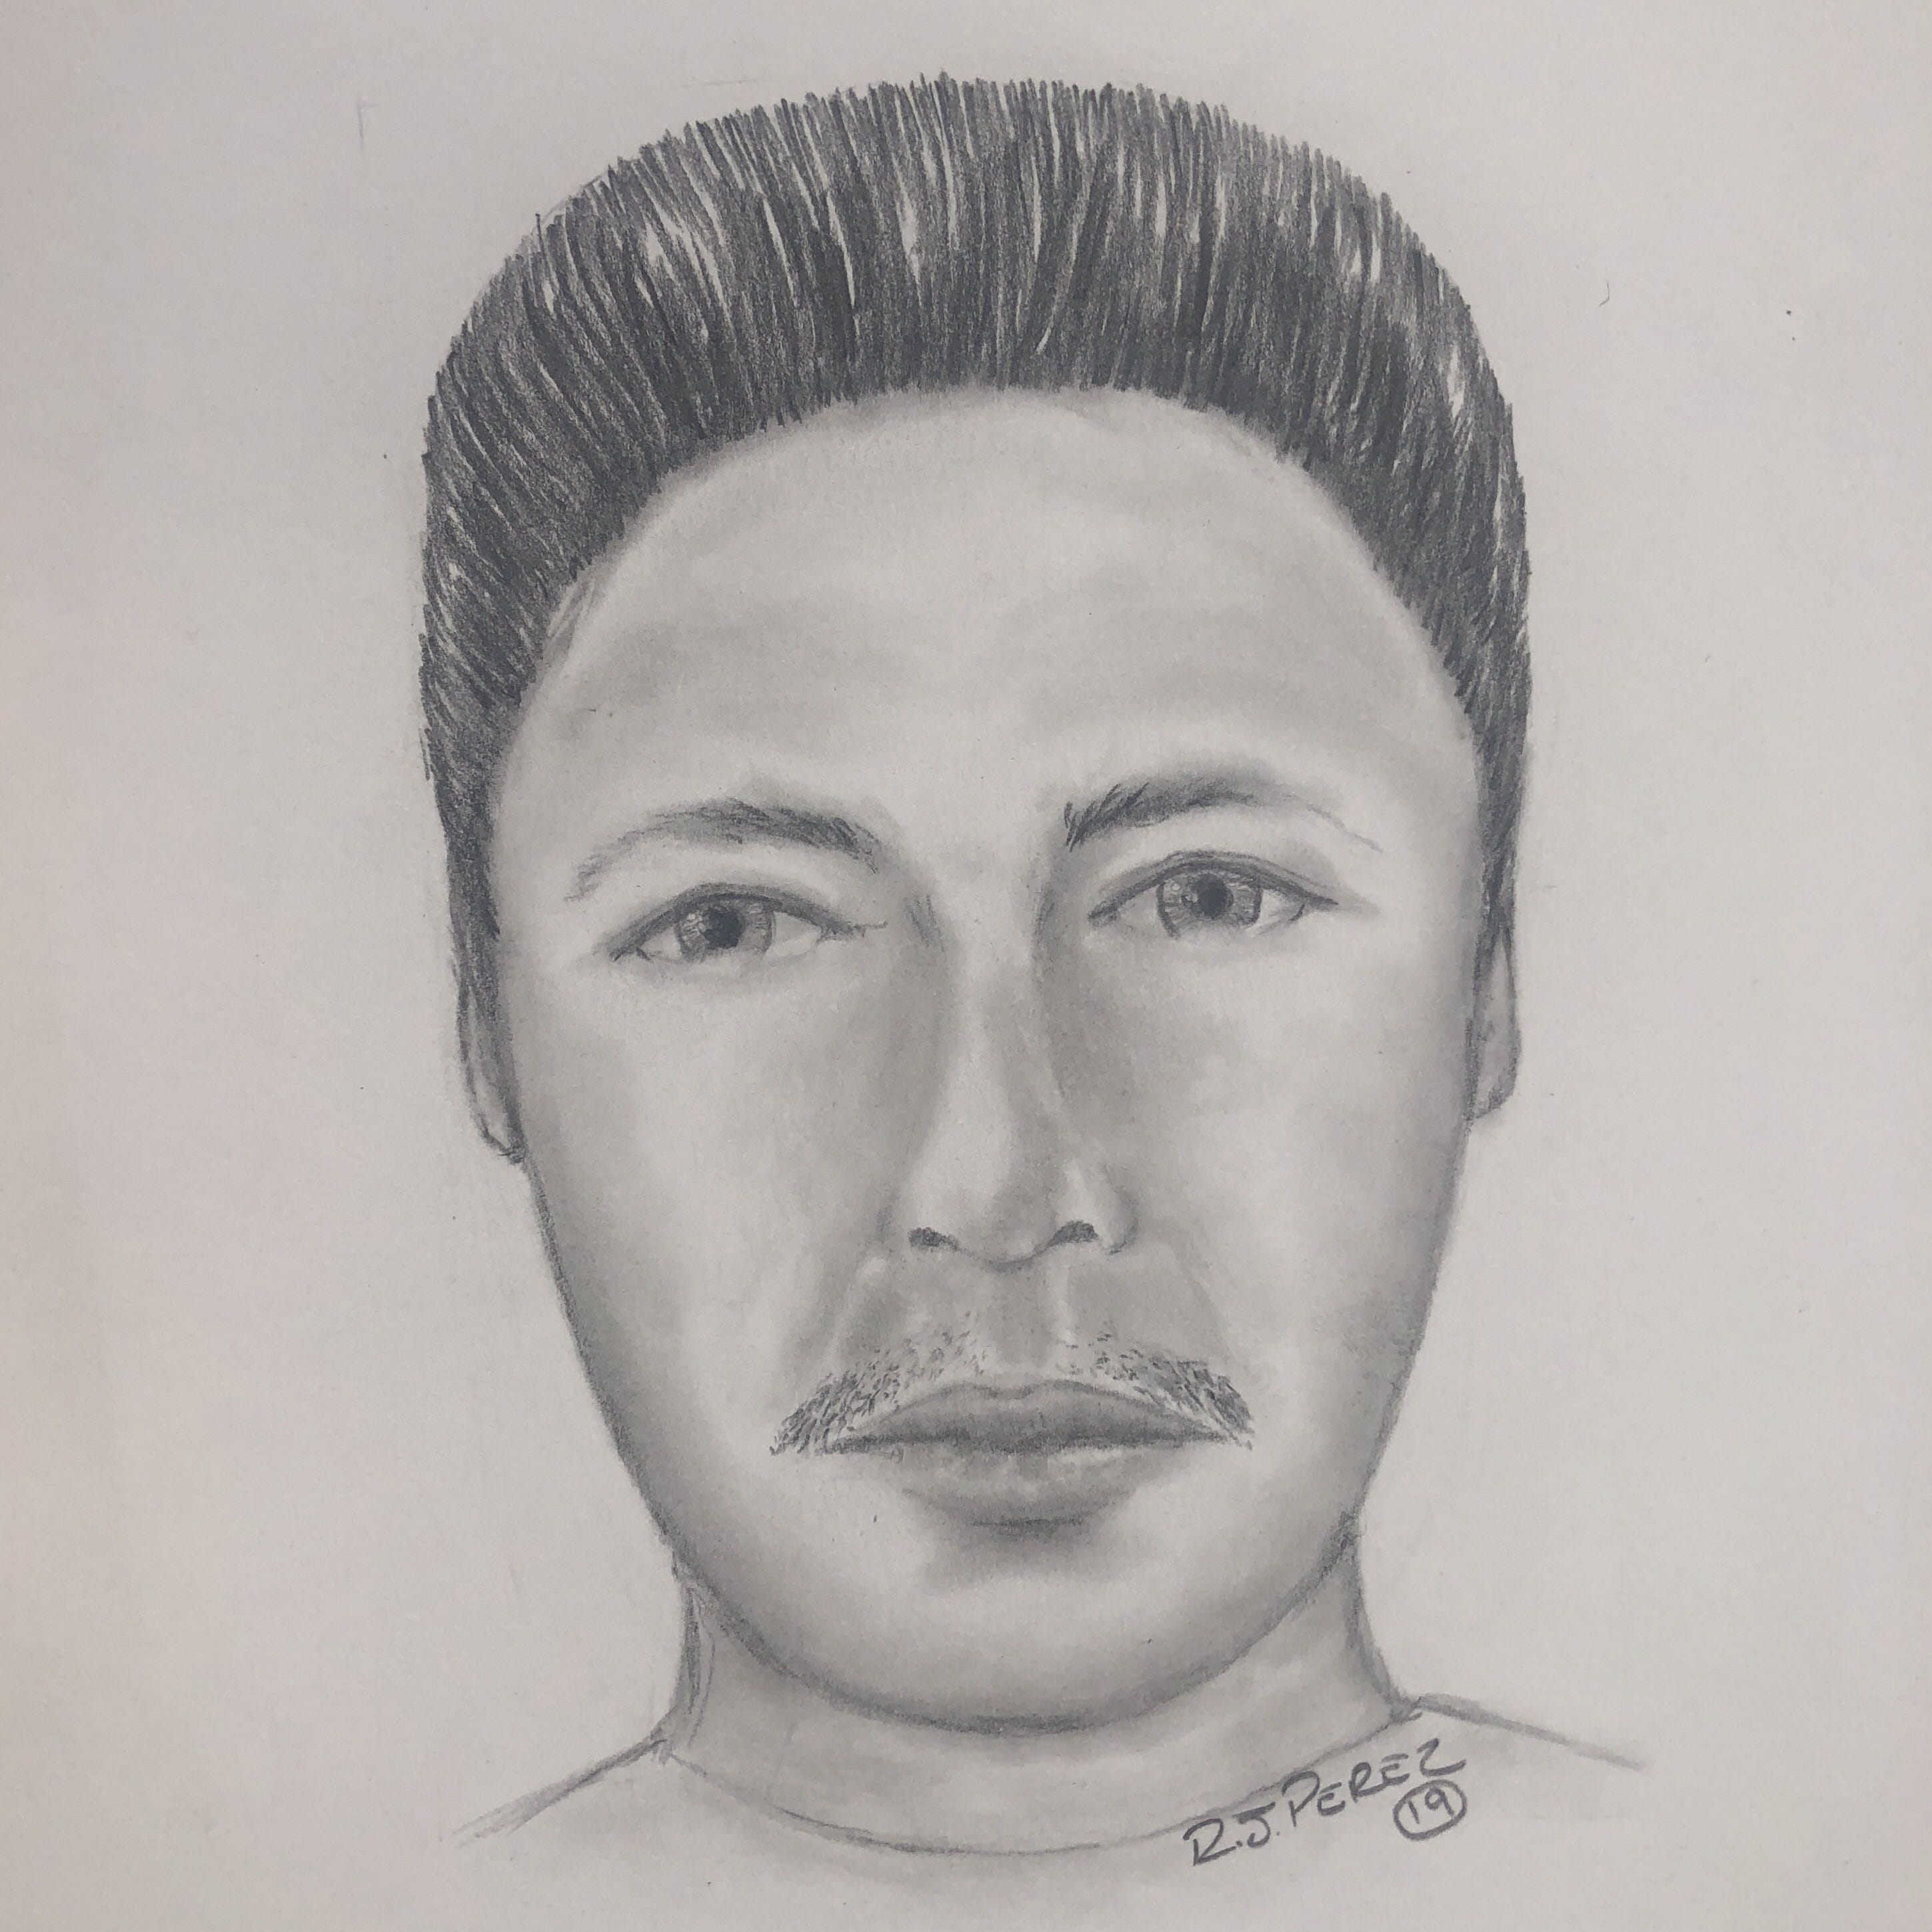 Oxnard police seek help in identifying assault suspect